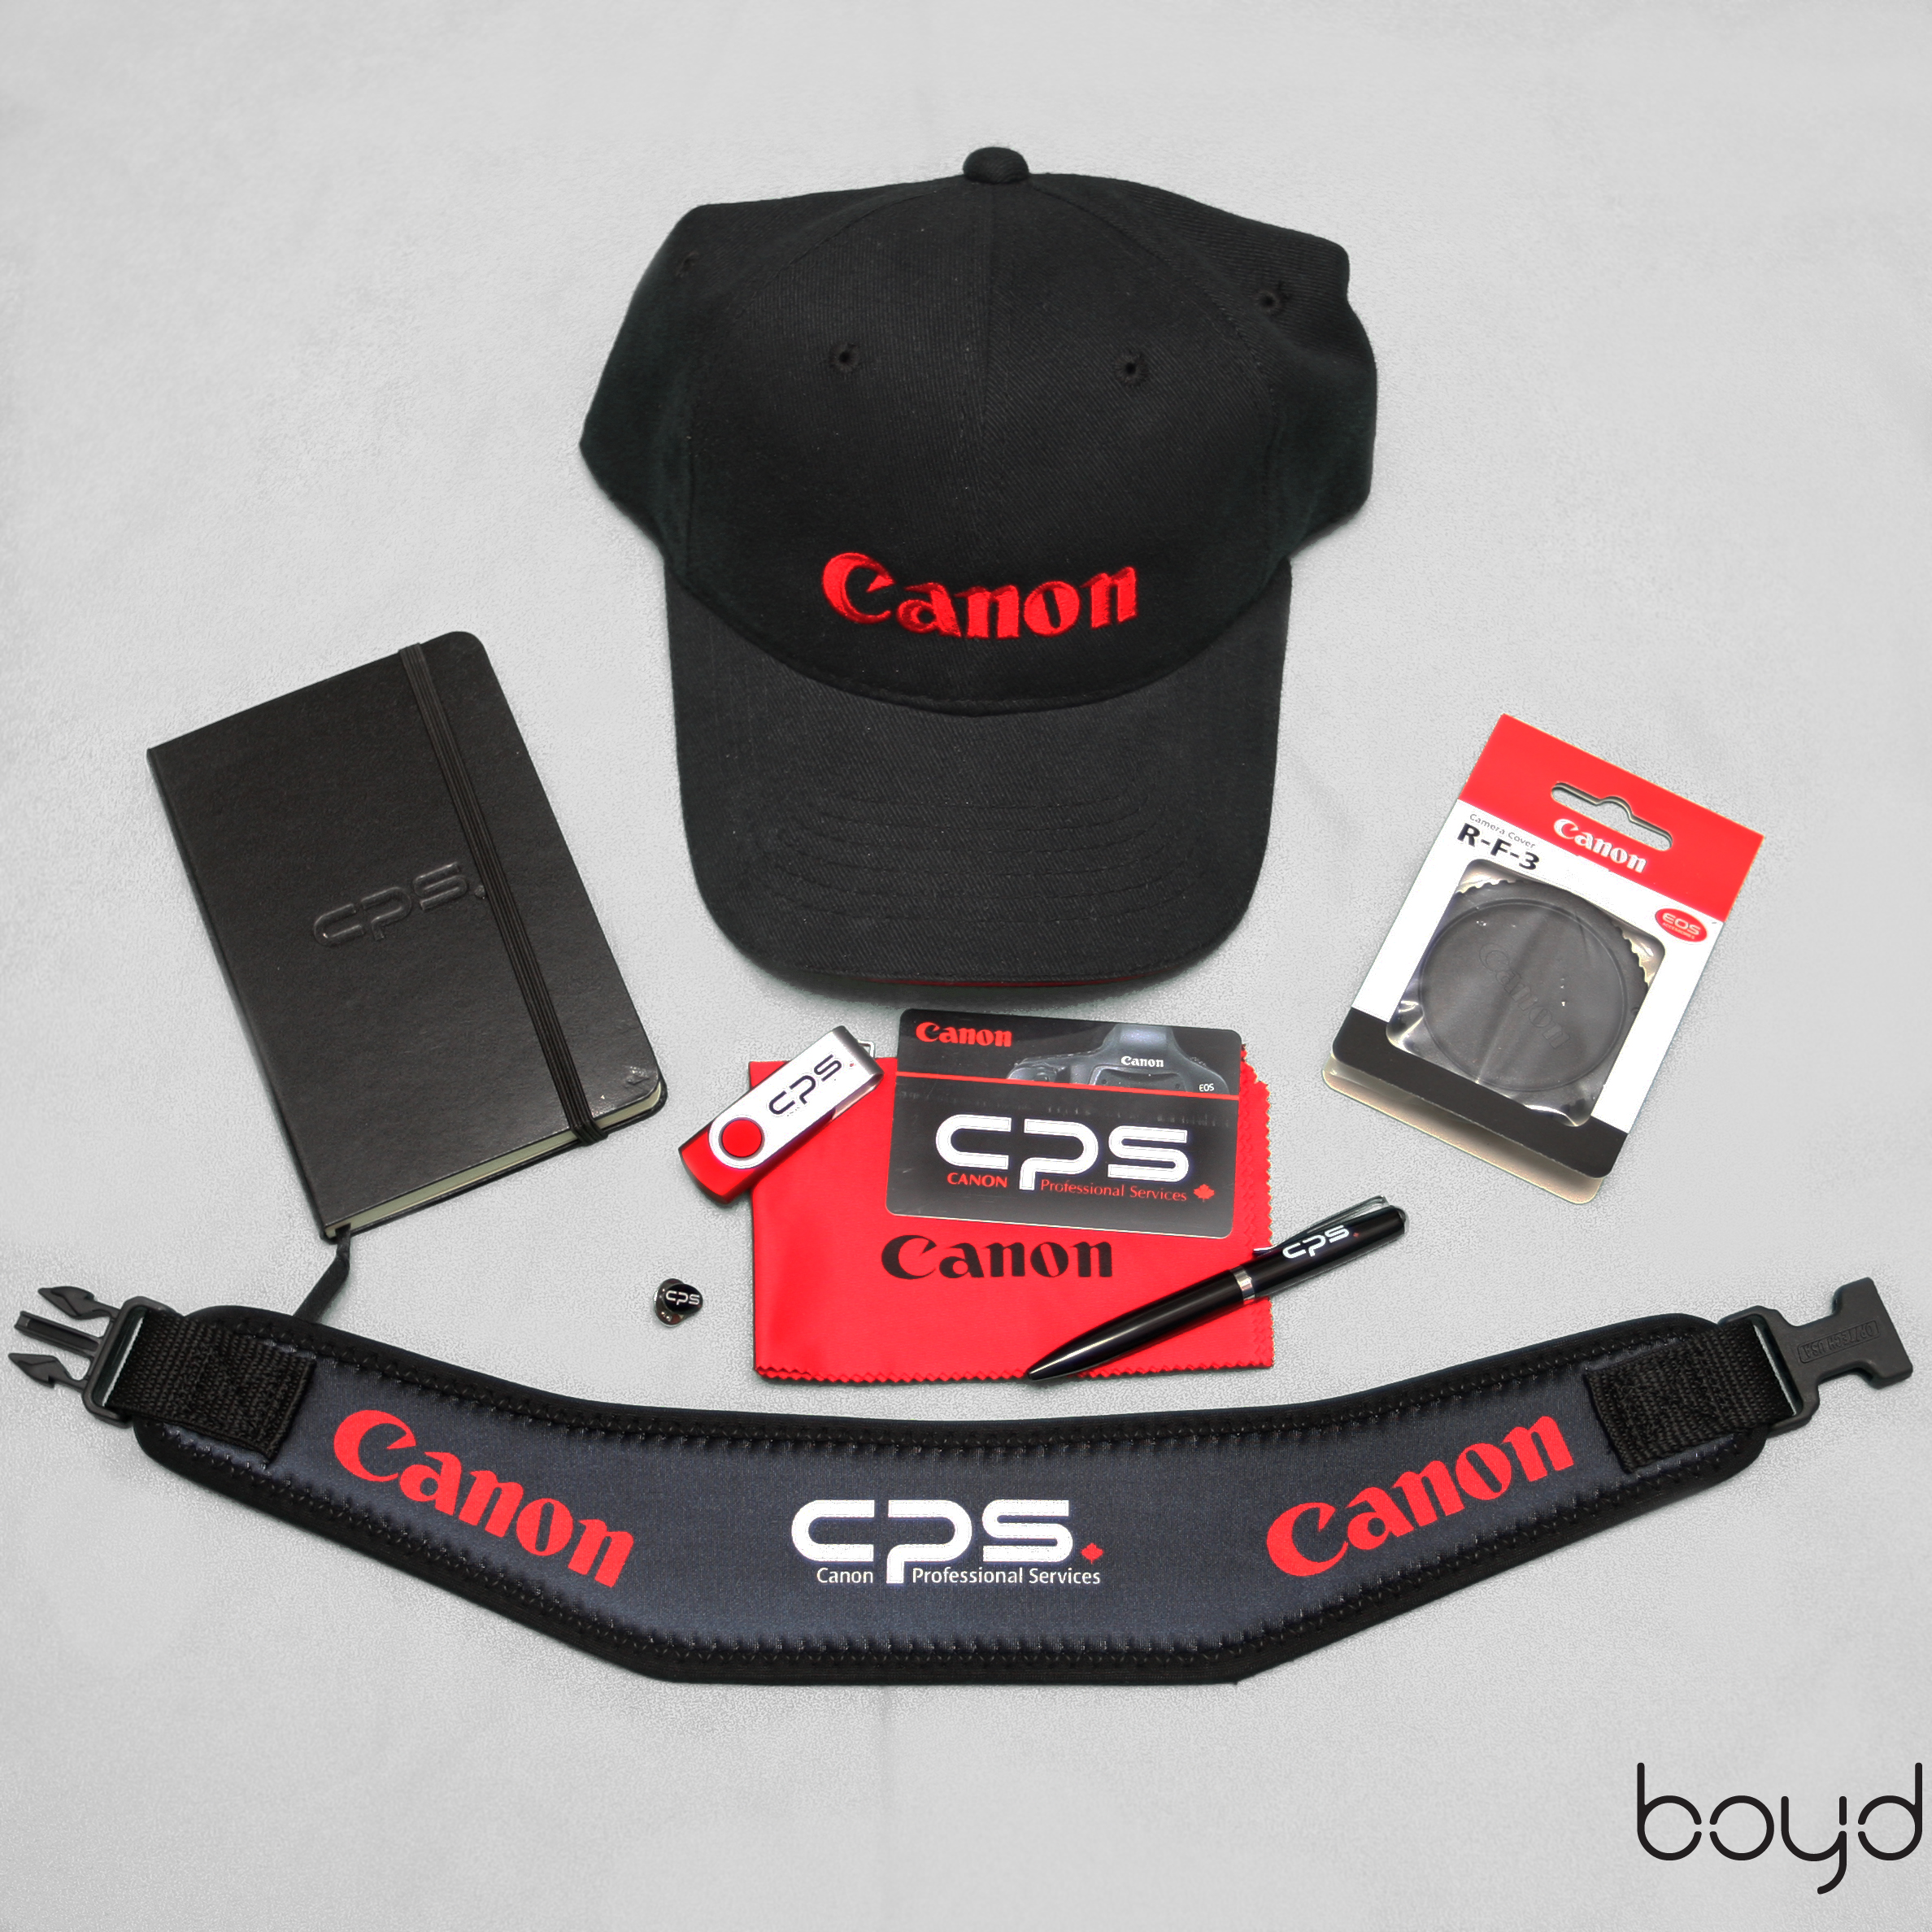 Canon Canada Cps Professional Services Canadian Through